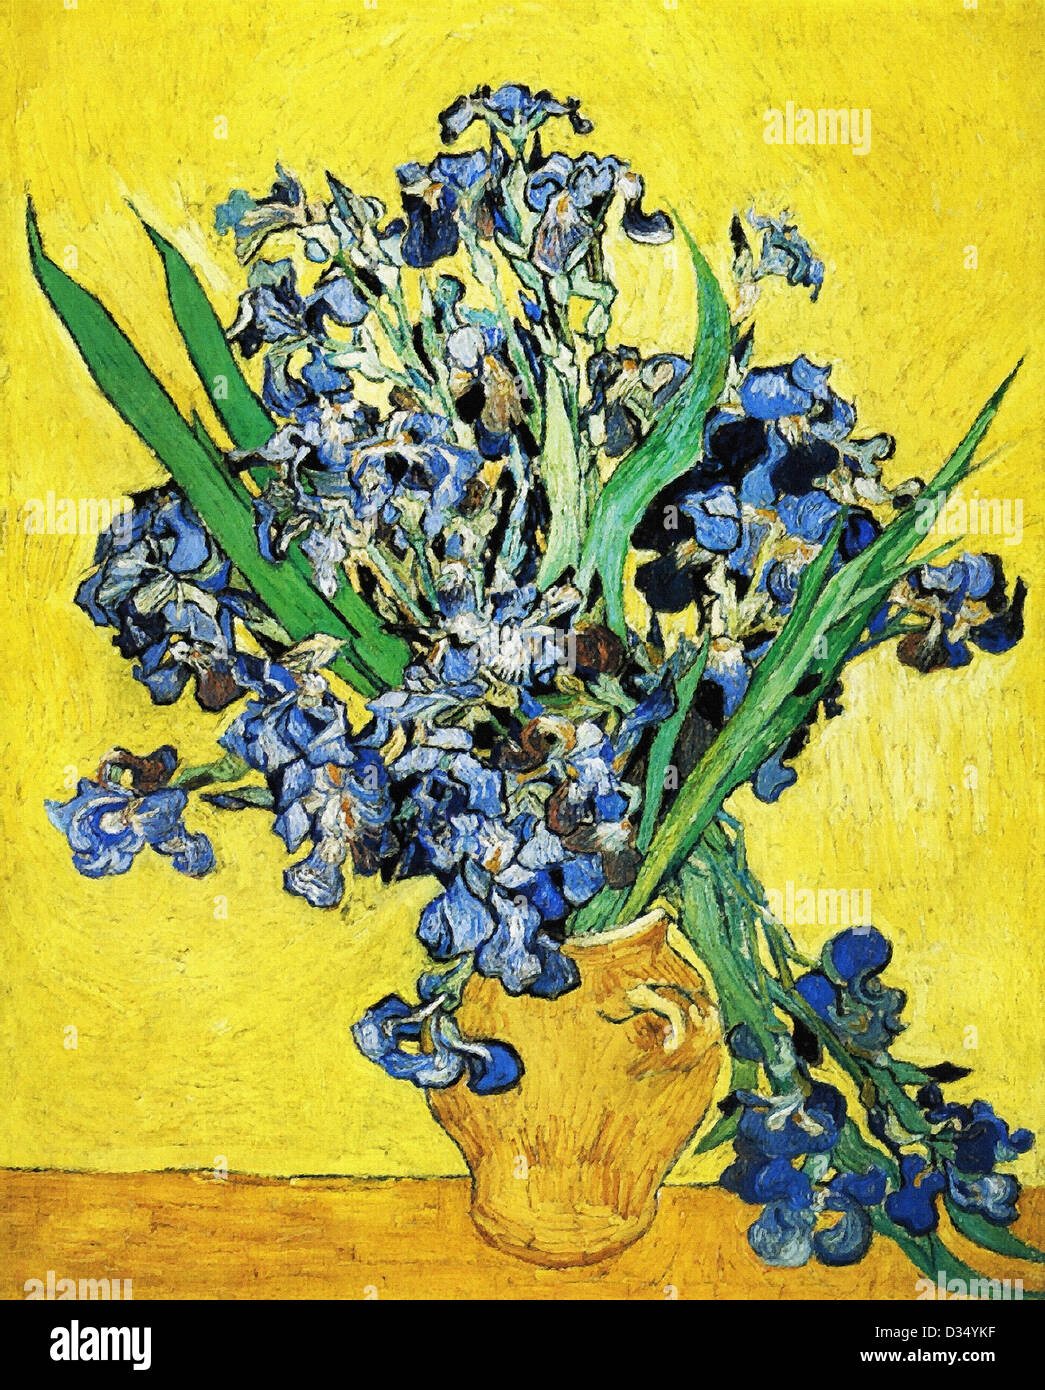 vincent van gogh still life with irises 1890 post impressionism stock photo royalty free. Black Bedroom Furniture Sets. Home Design Ideas